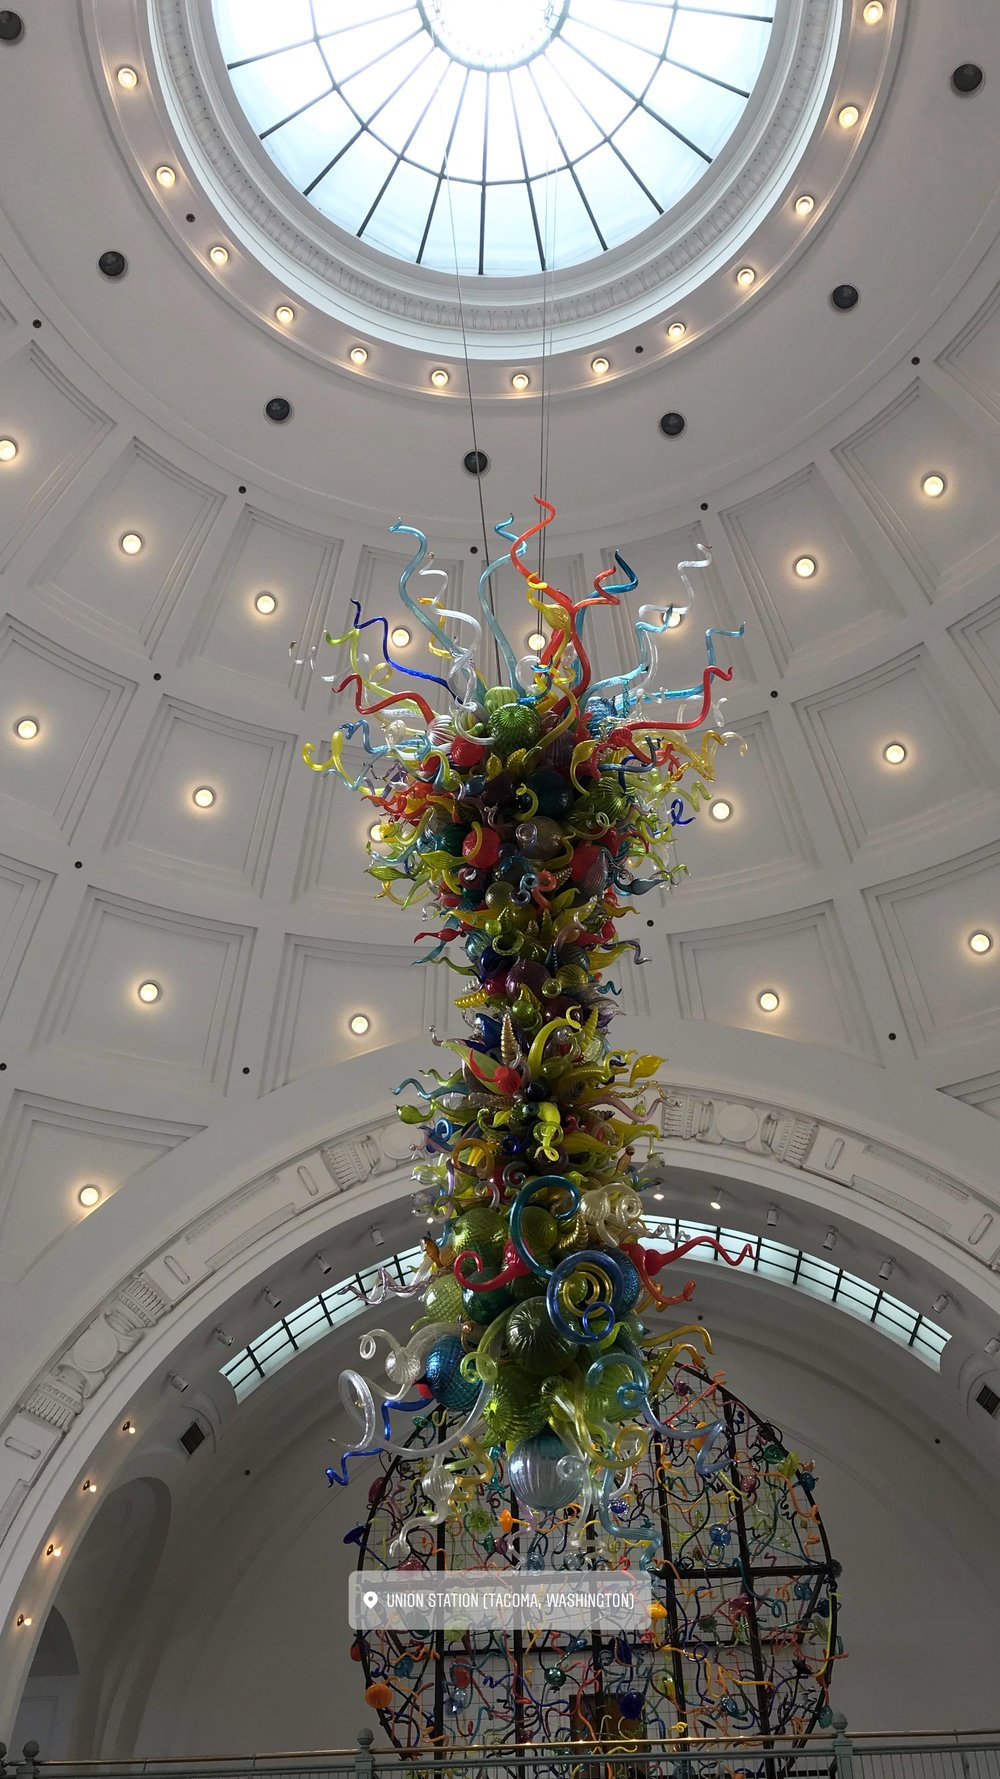 Art at the Union Station courthouse lobby